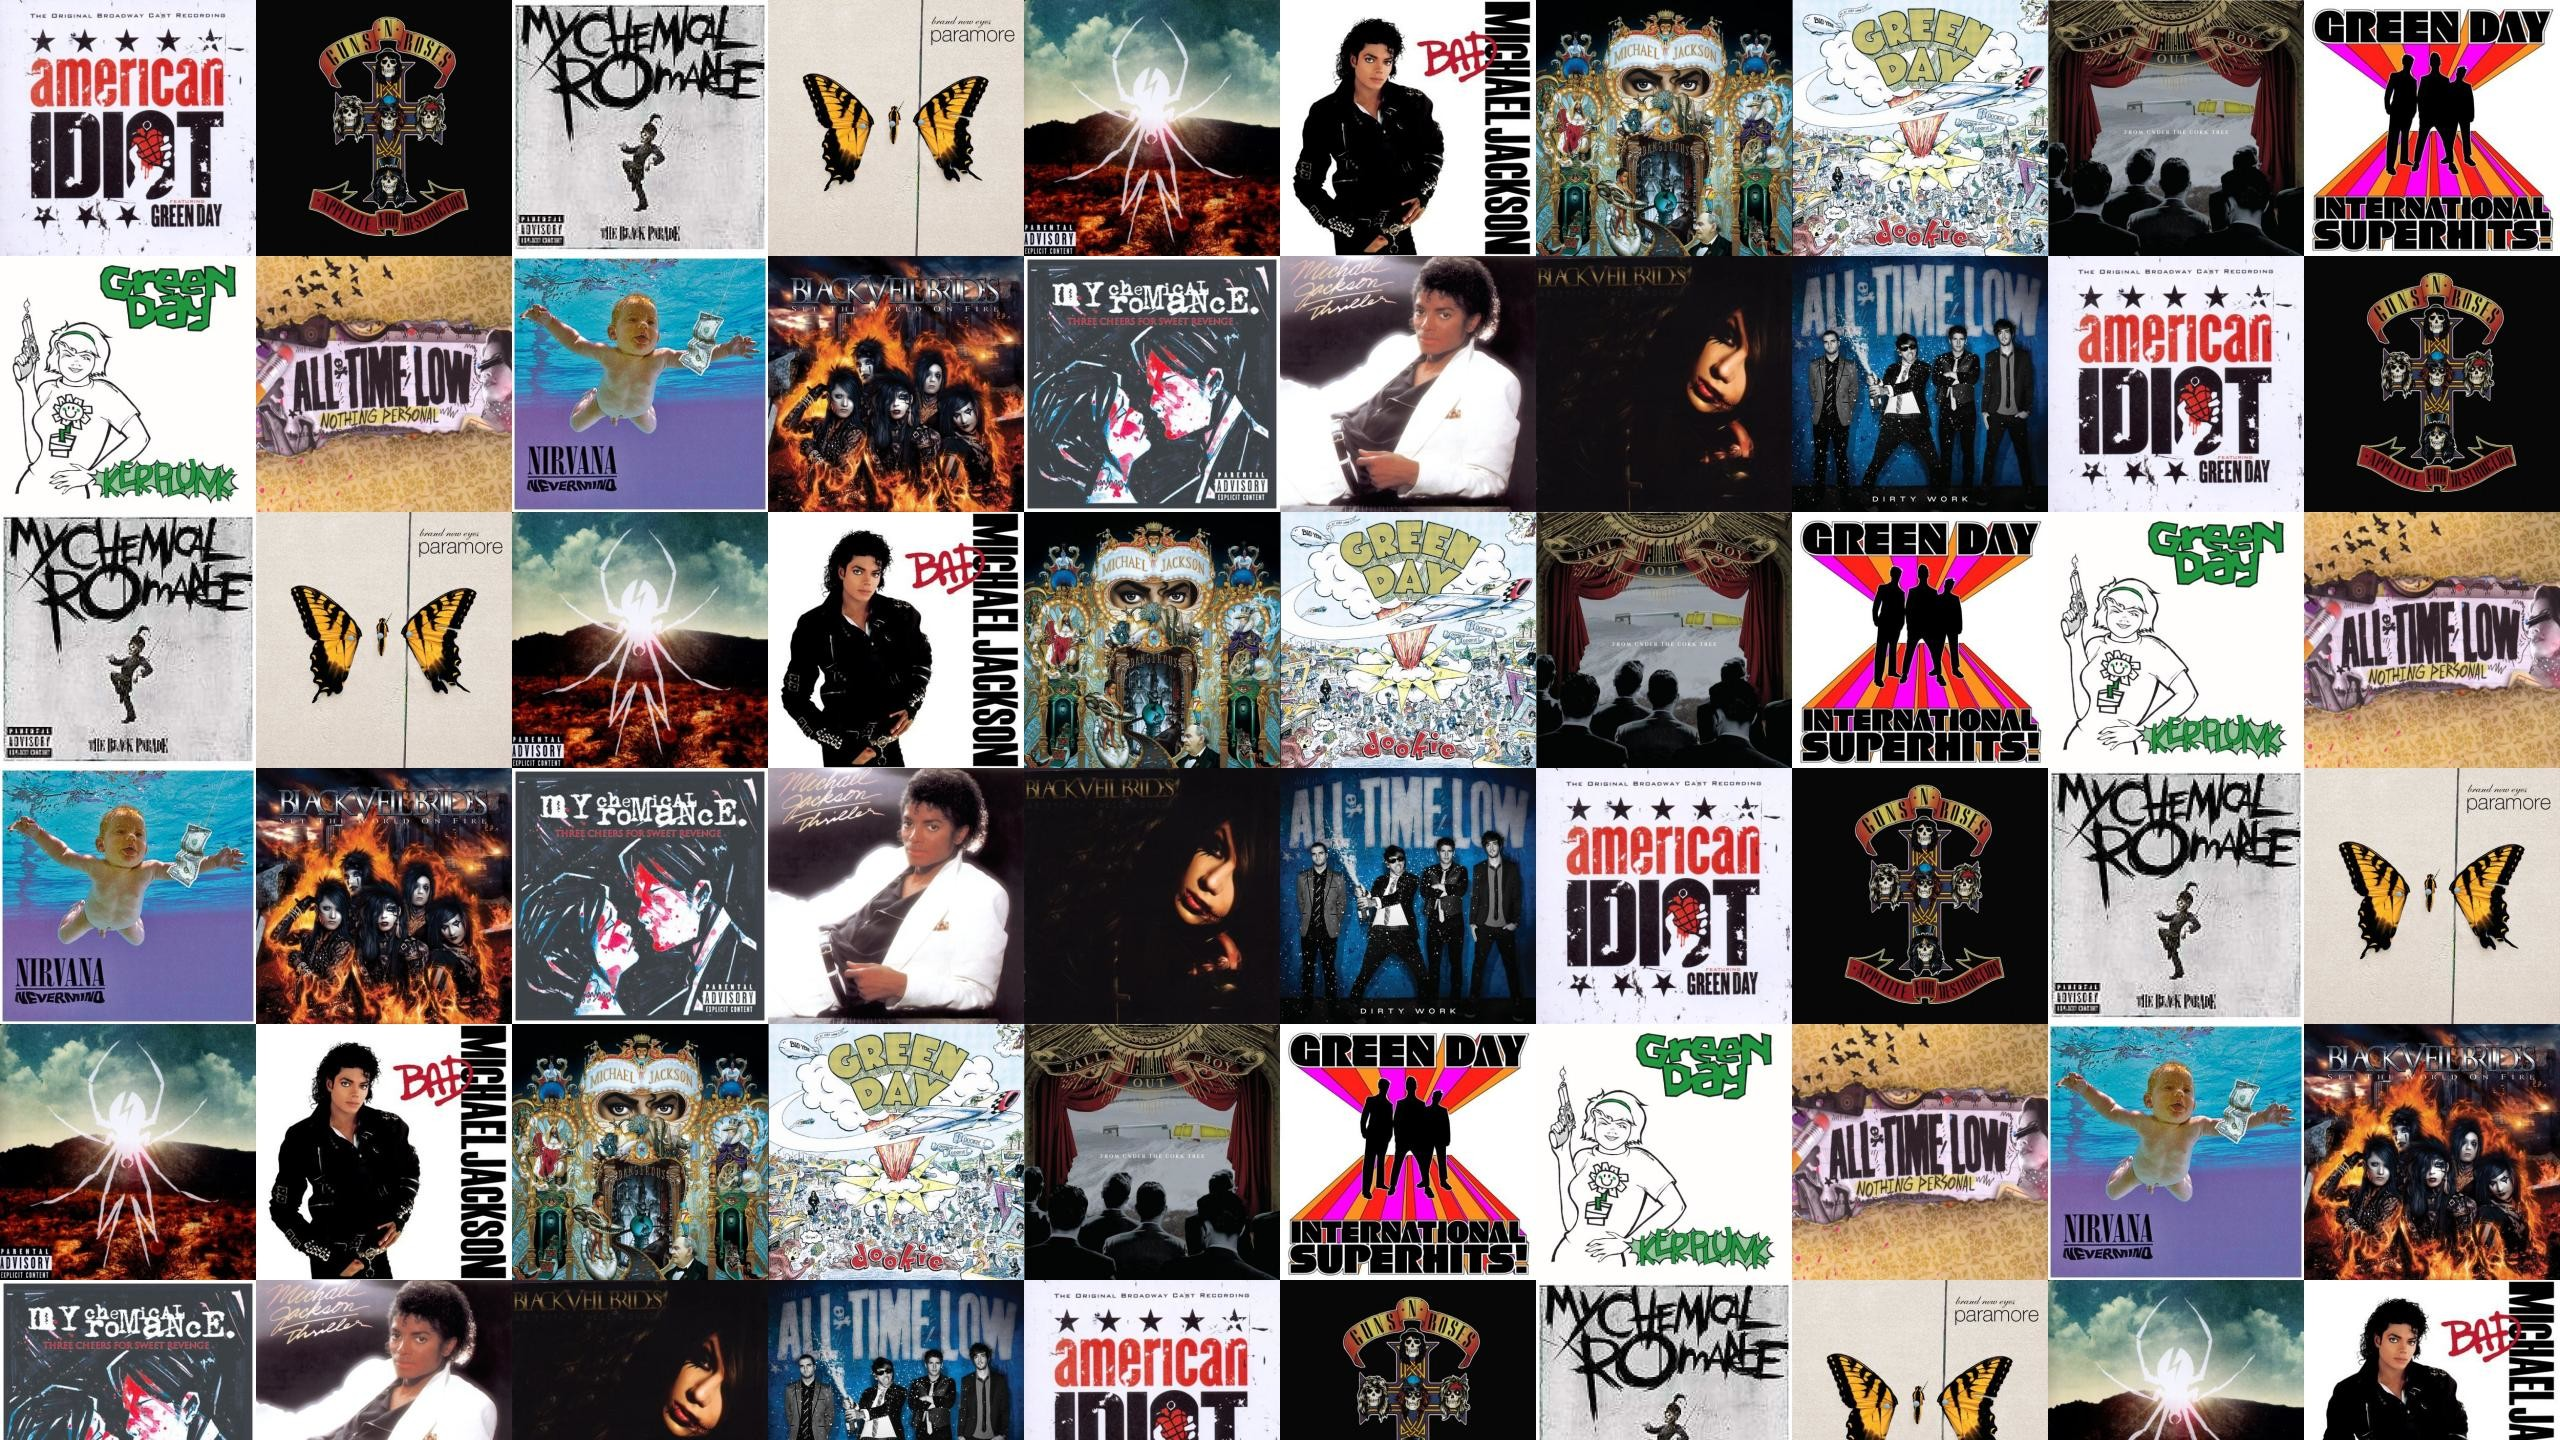 2560x1440 Green Day American Idiot Guns N Roses Appetite Wallpaper Â« Tiled Desktop  Wallpaper